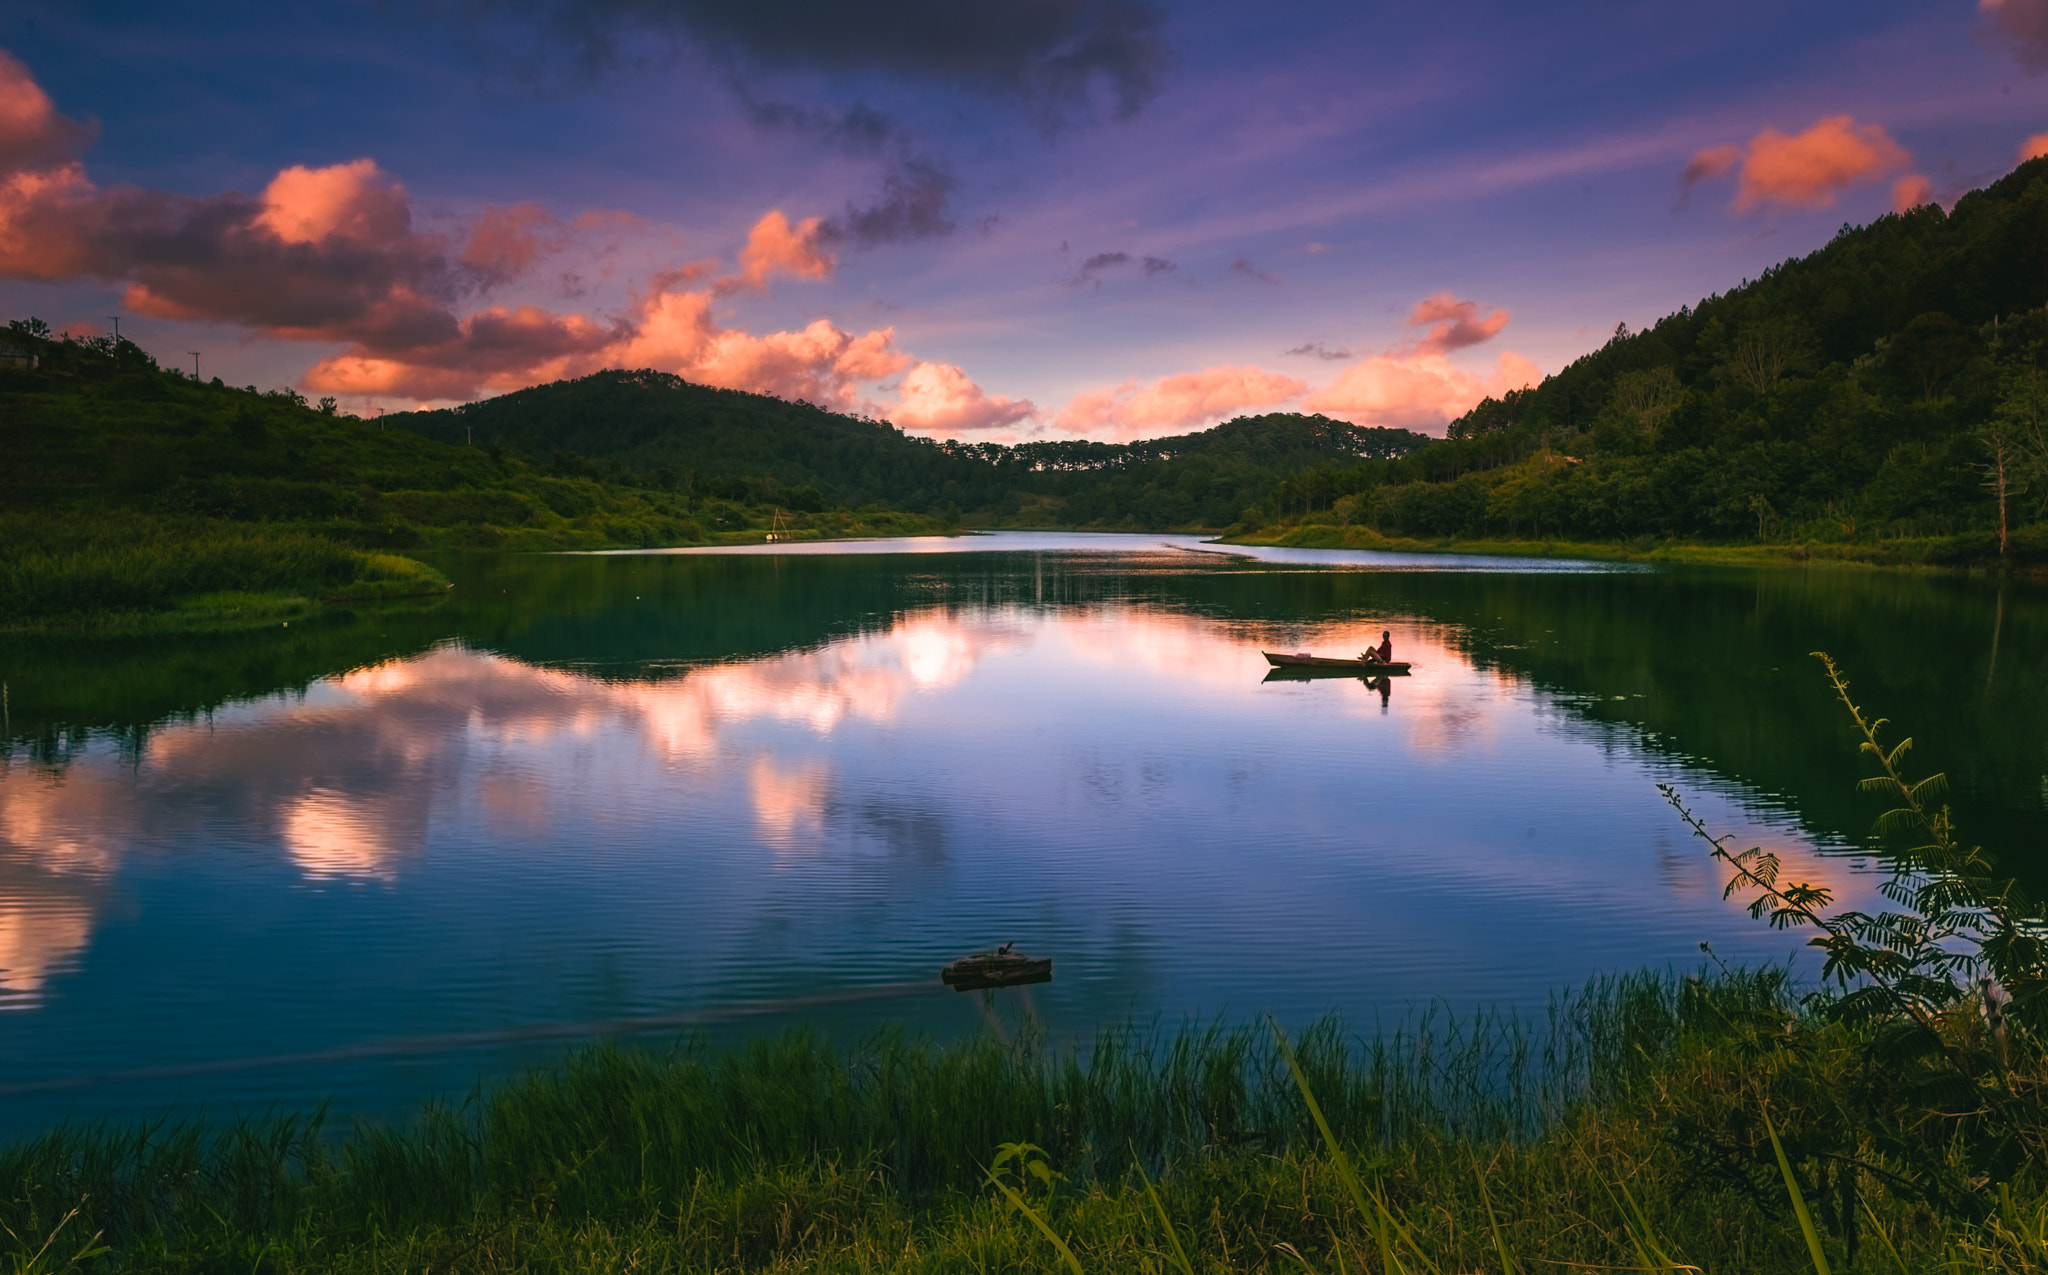 Photograph Clouds on water by love leica on 500px